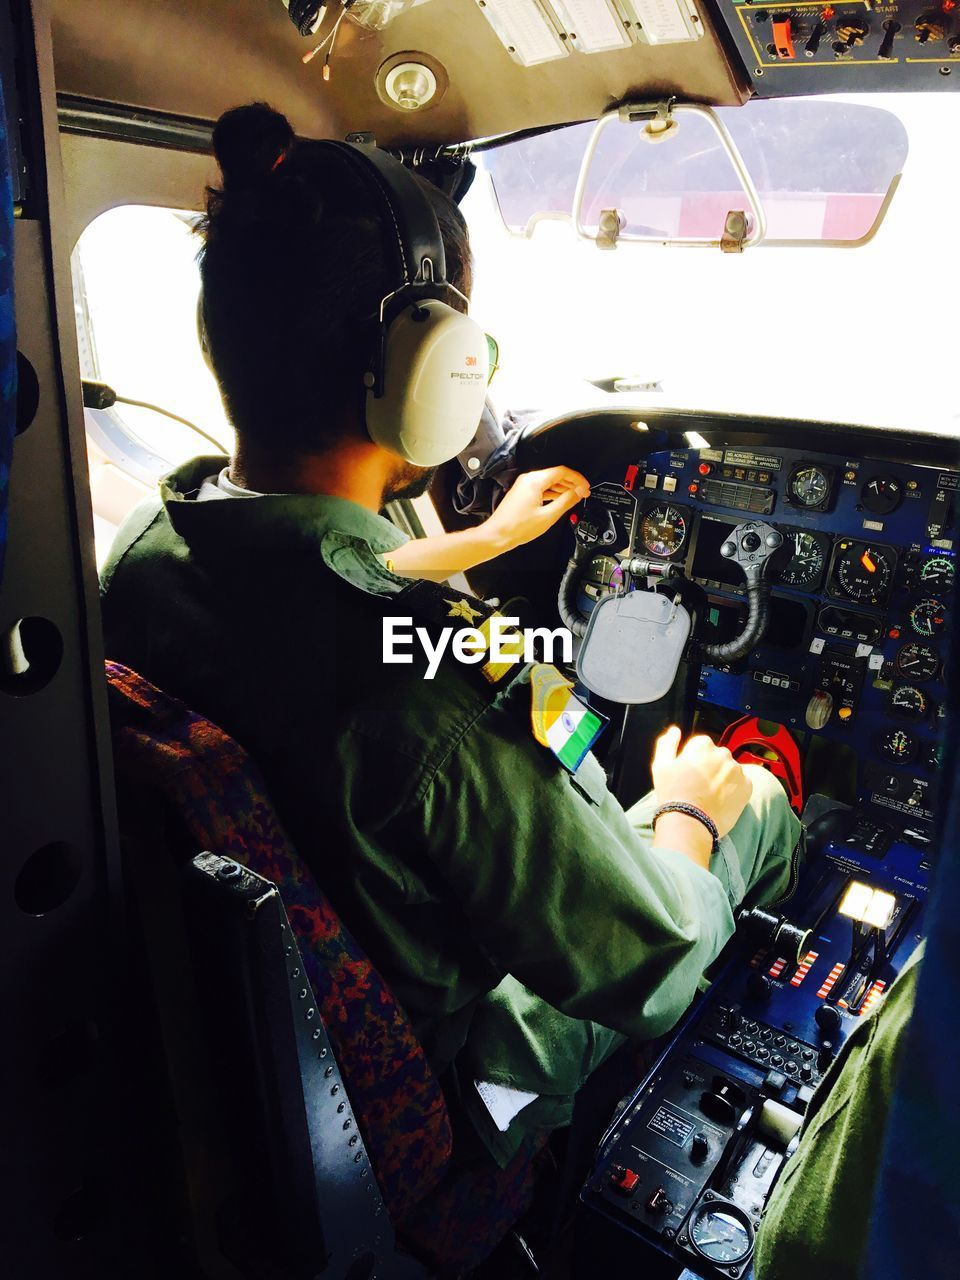 cockpit, airplane, real people, pilot, sitting, transportation, piloting, control panel, indoors, occupation, one person, air vehicle, mode of transport, uniform, day, flying, technology, people